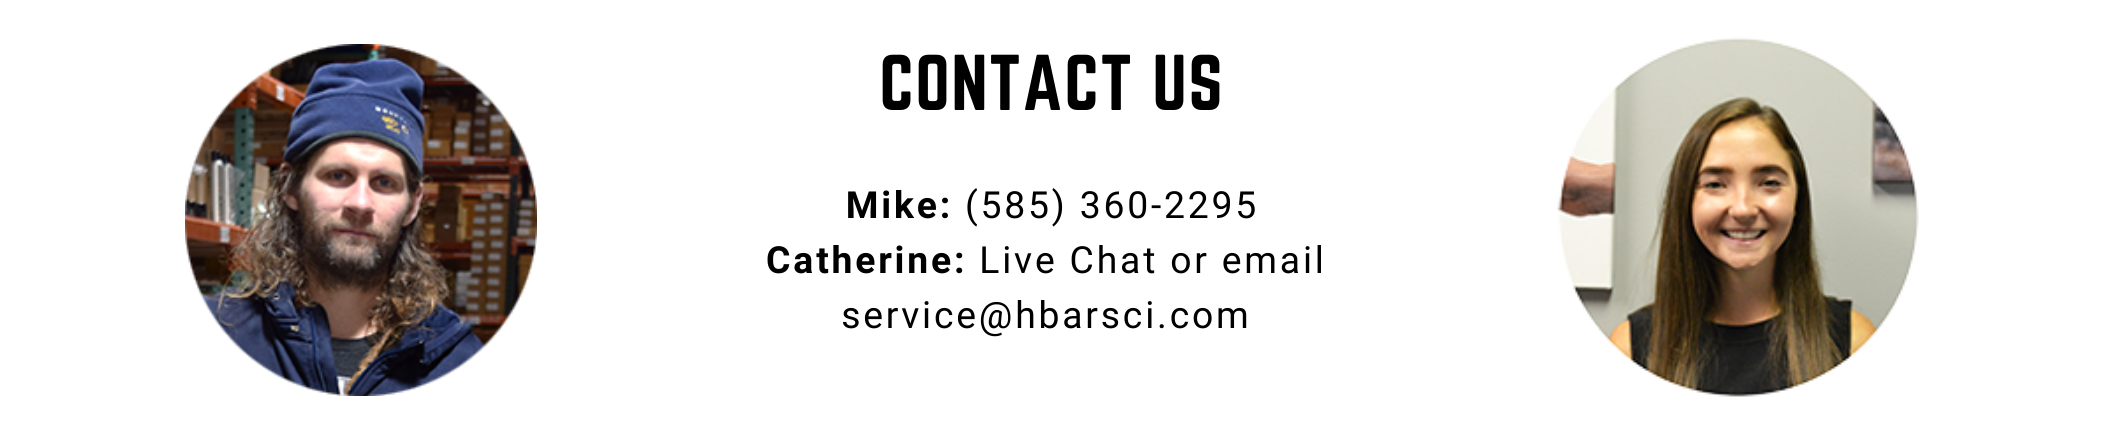 Contact Mike or Catherine with any shipment or product-related questions